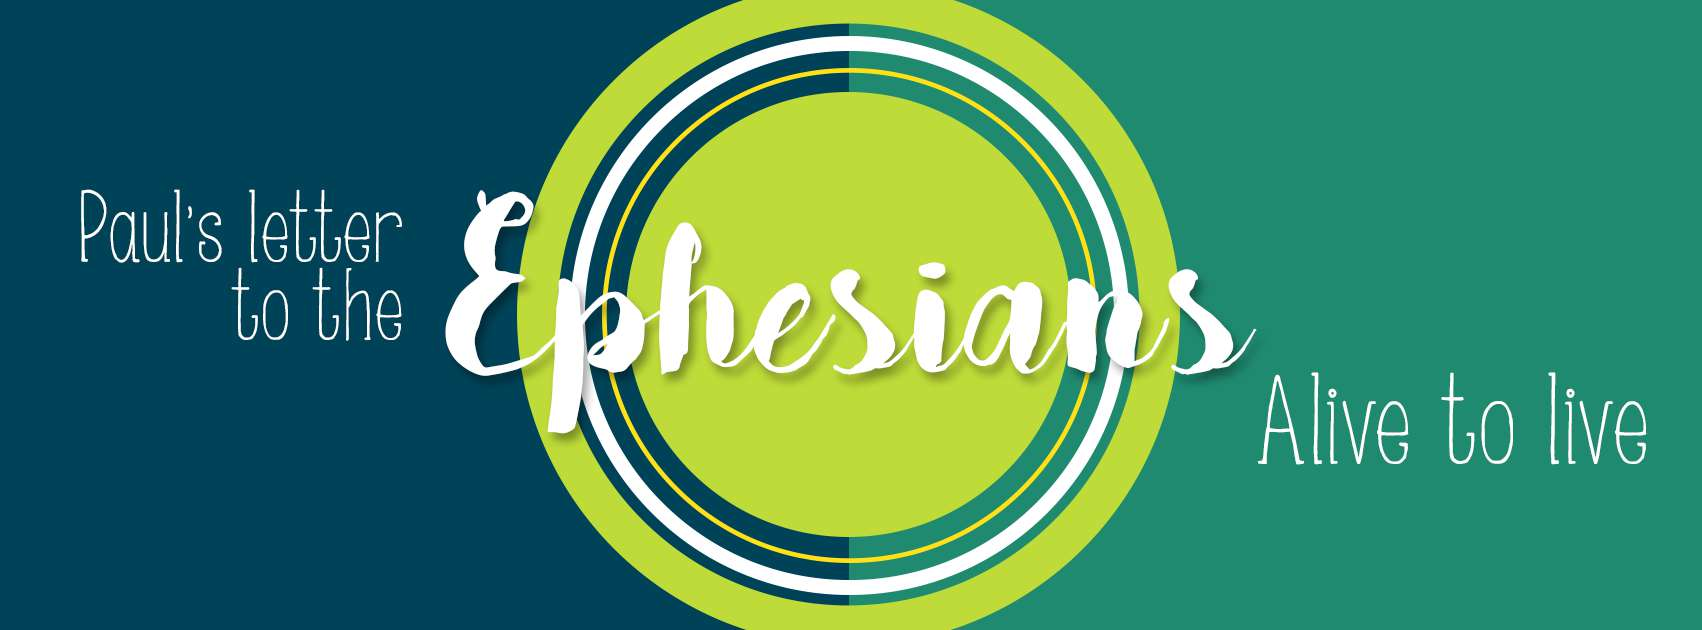 Ephesians: Alive To Live, Part 10: 5:15-21